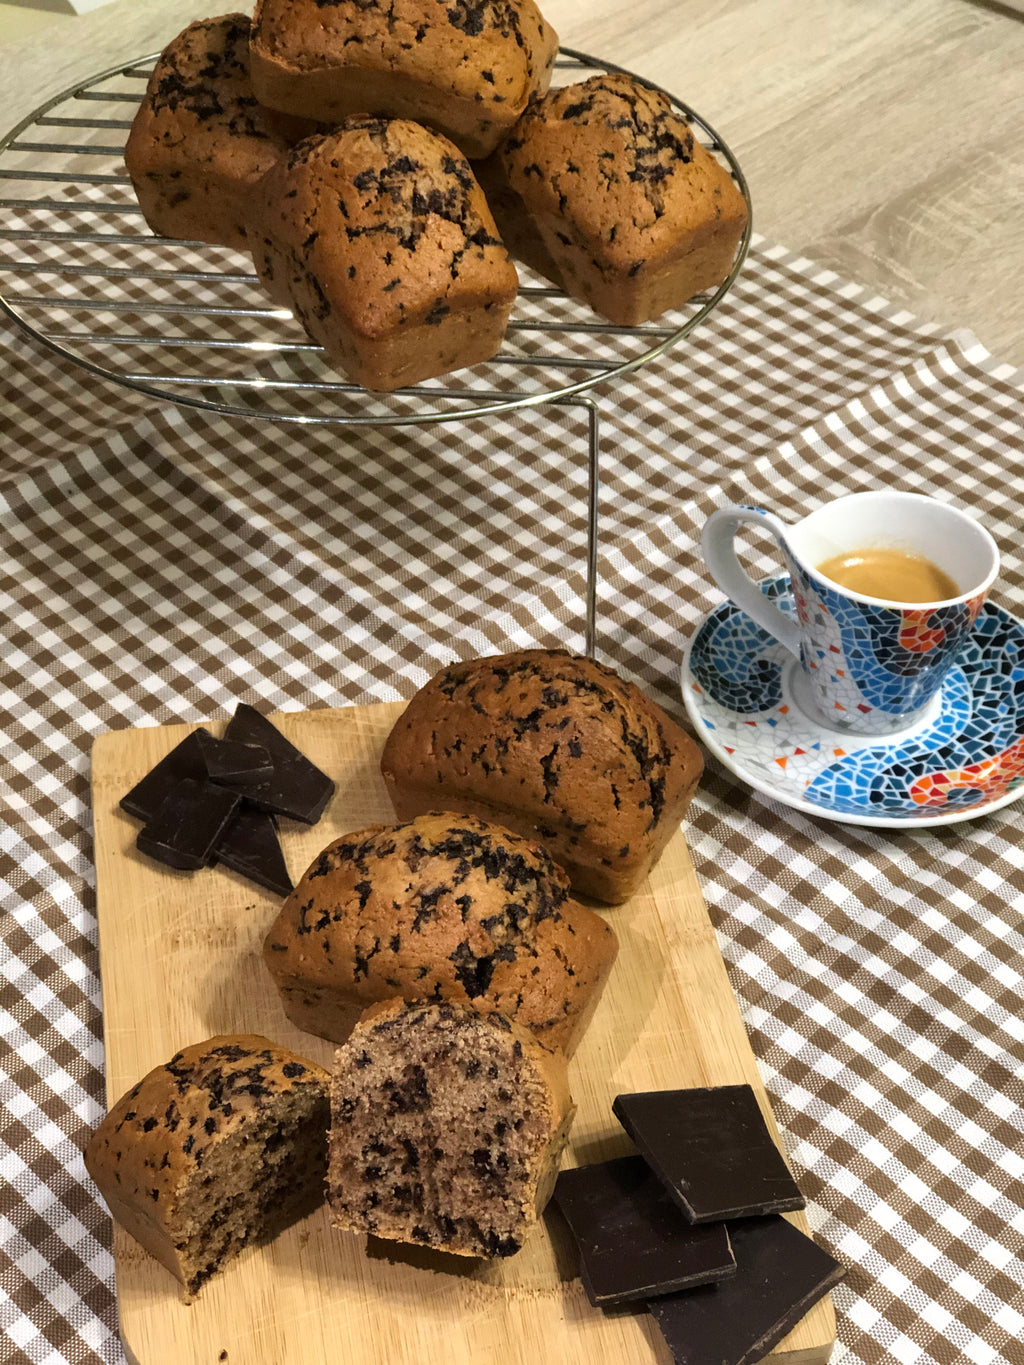 Mini plumcake with coffee and chocolate drops